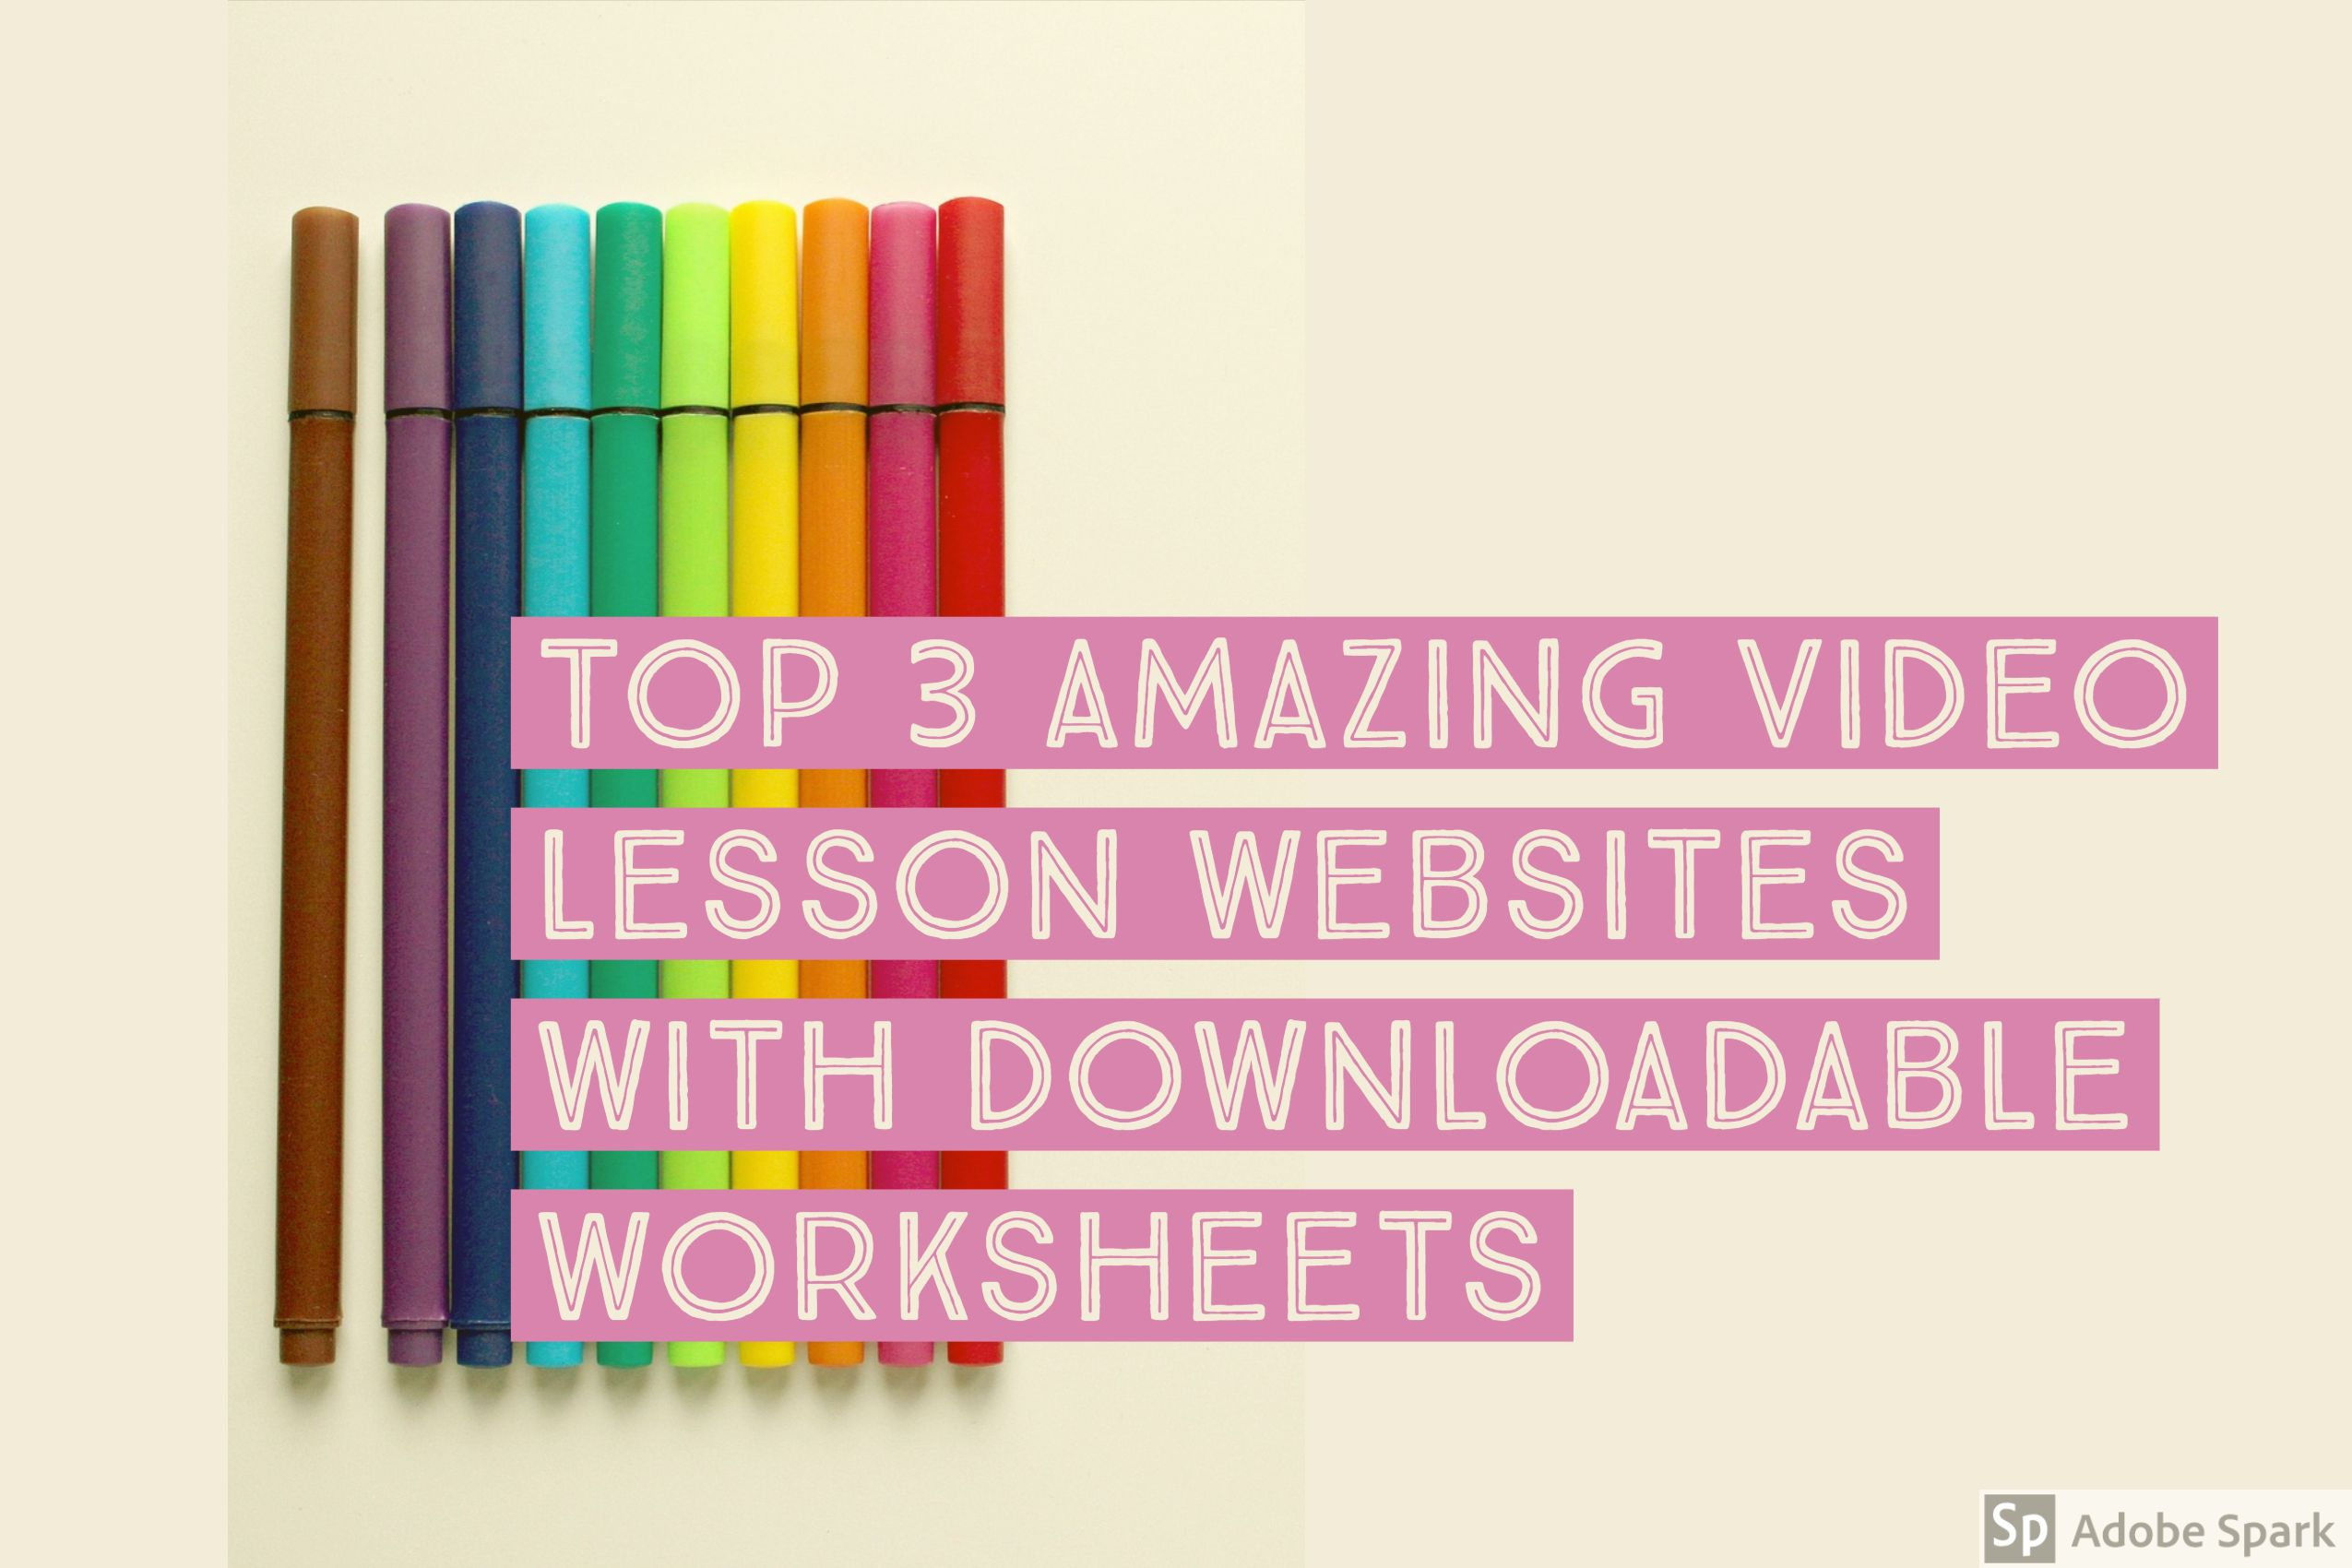 Top 3 Amazing Video Lesson Websites With Downloadable